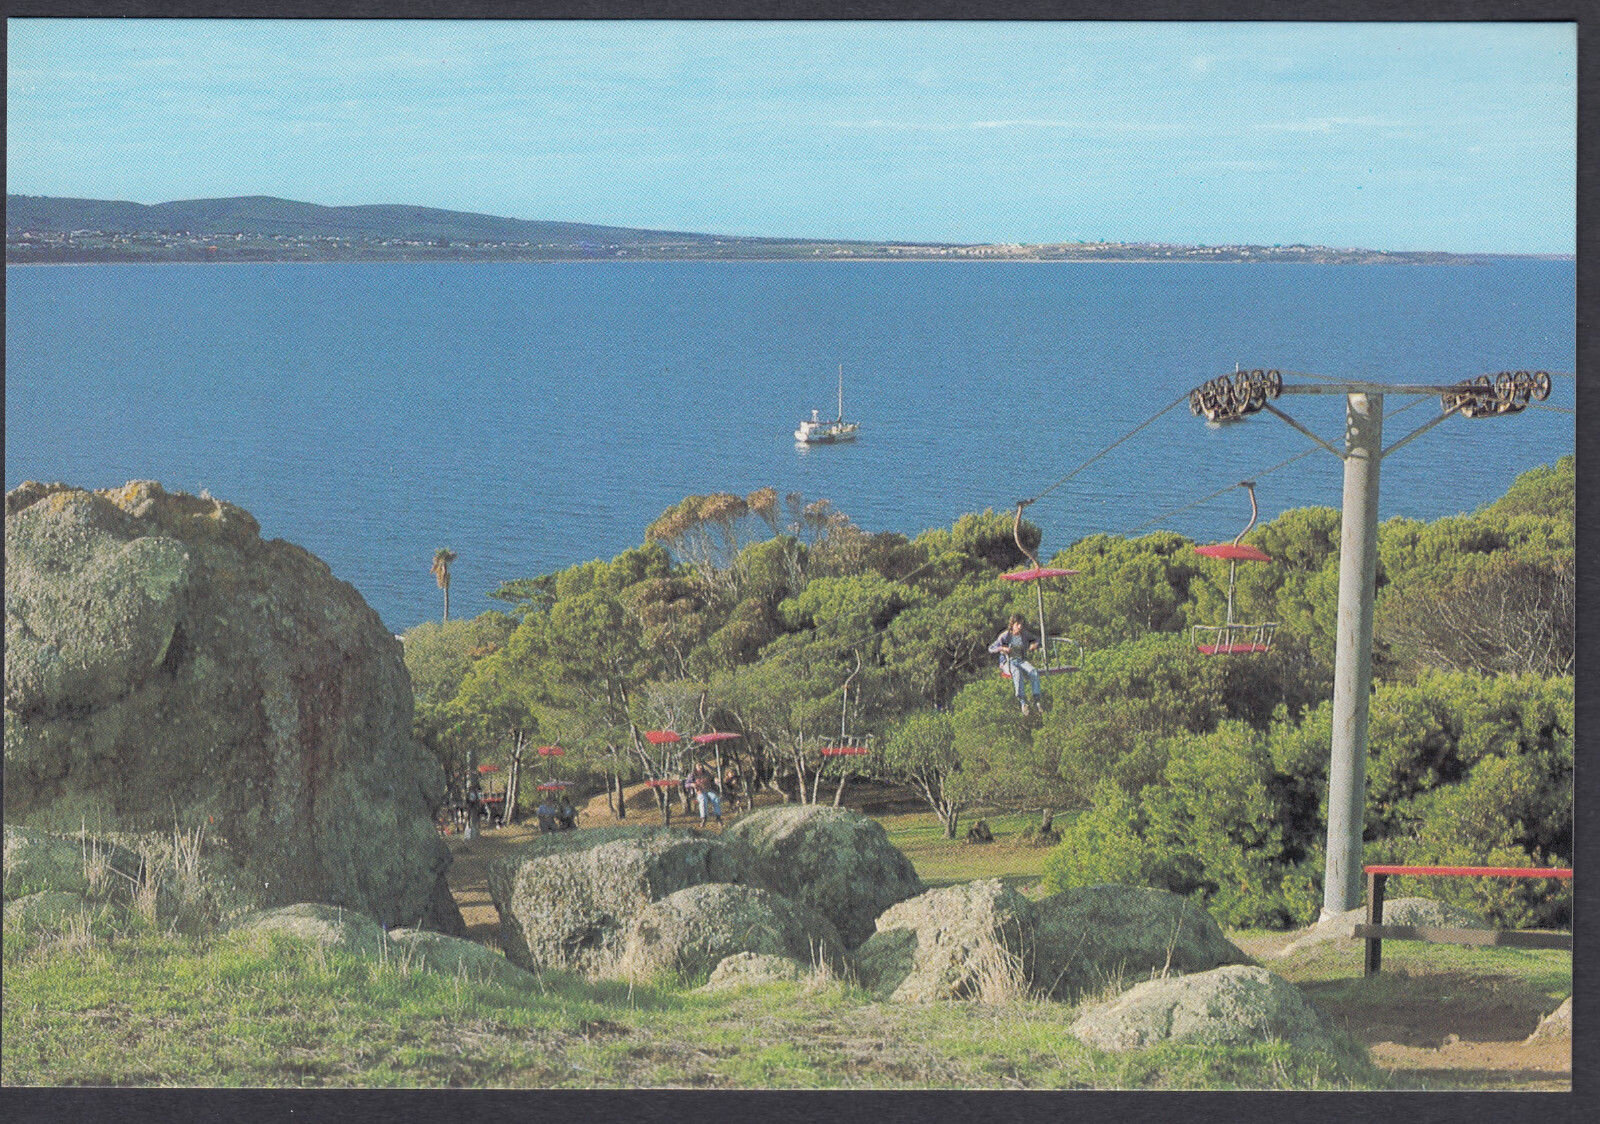 1978 postcard of Granite Island chairlift near Victor Harbour